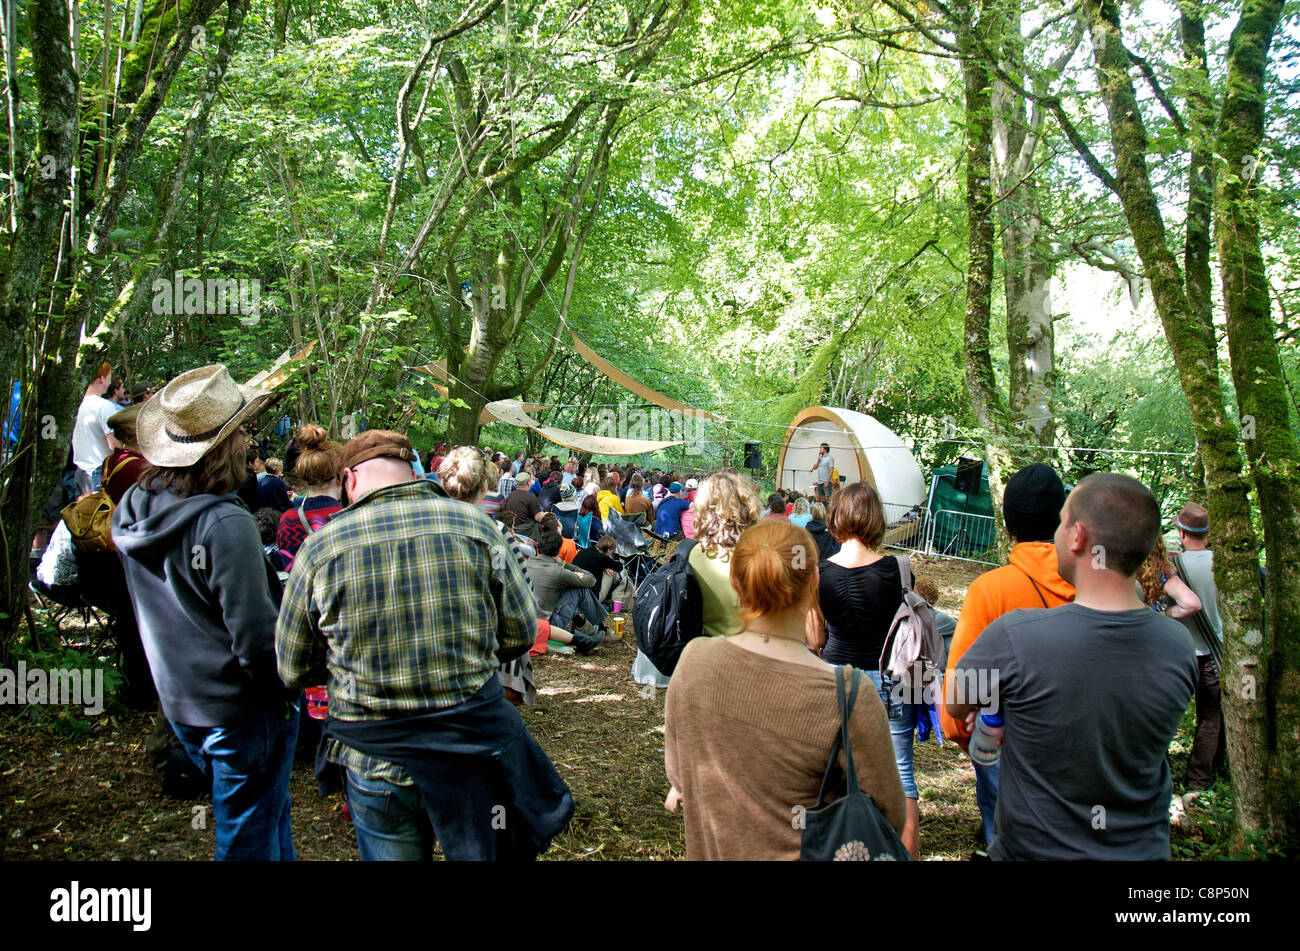 The Comedy stage at  the End of the Road Festival 2011 - Stock Image